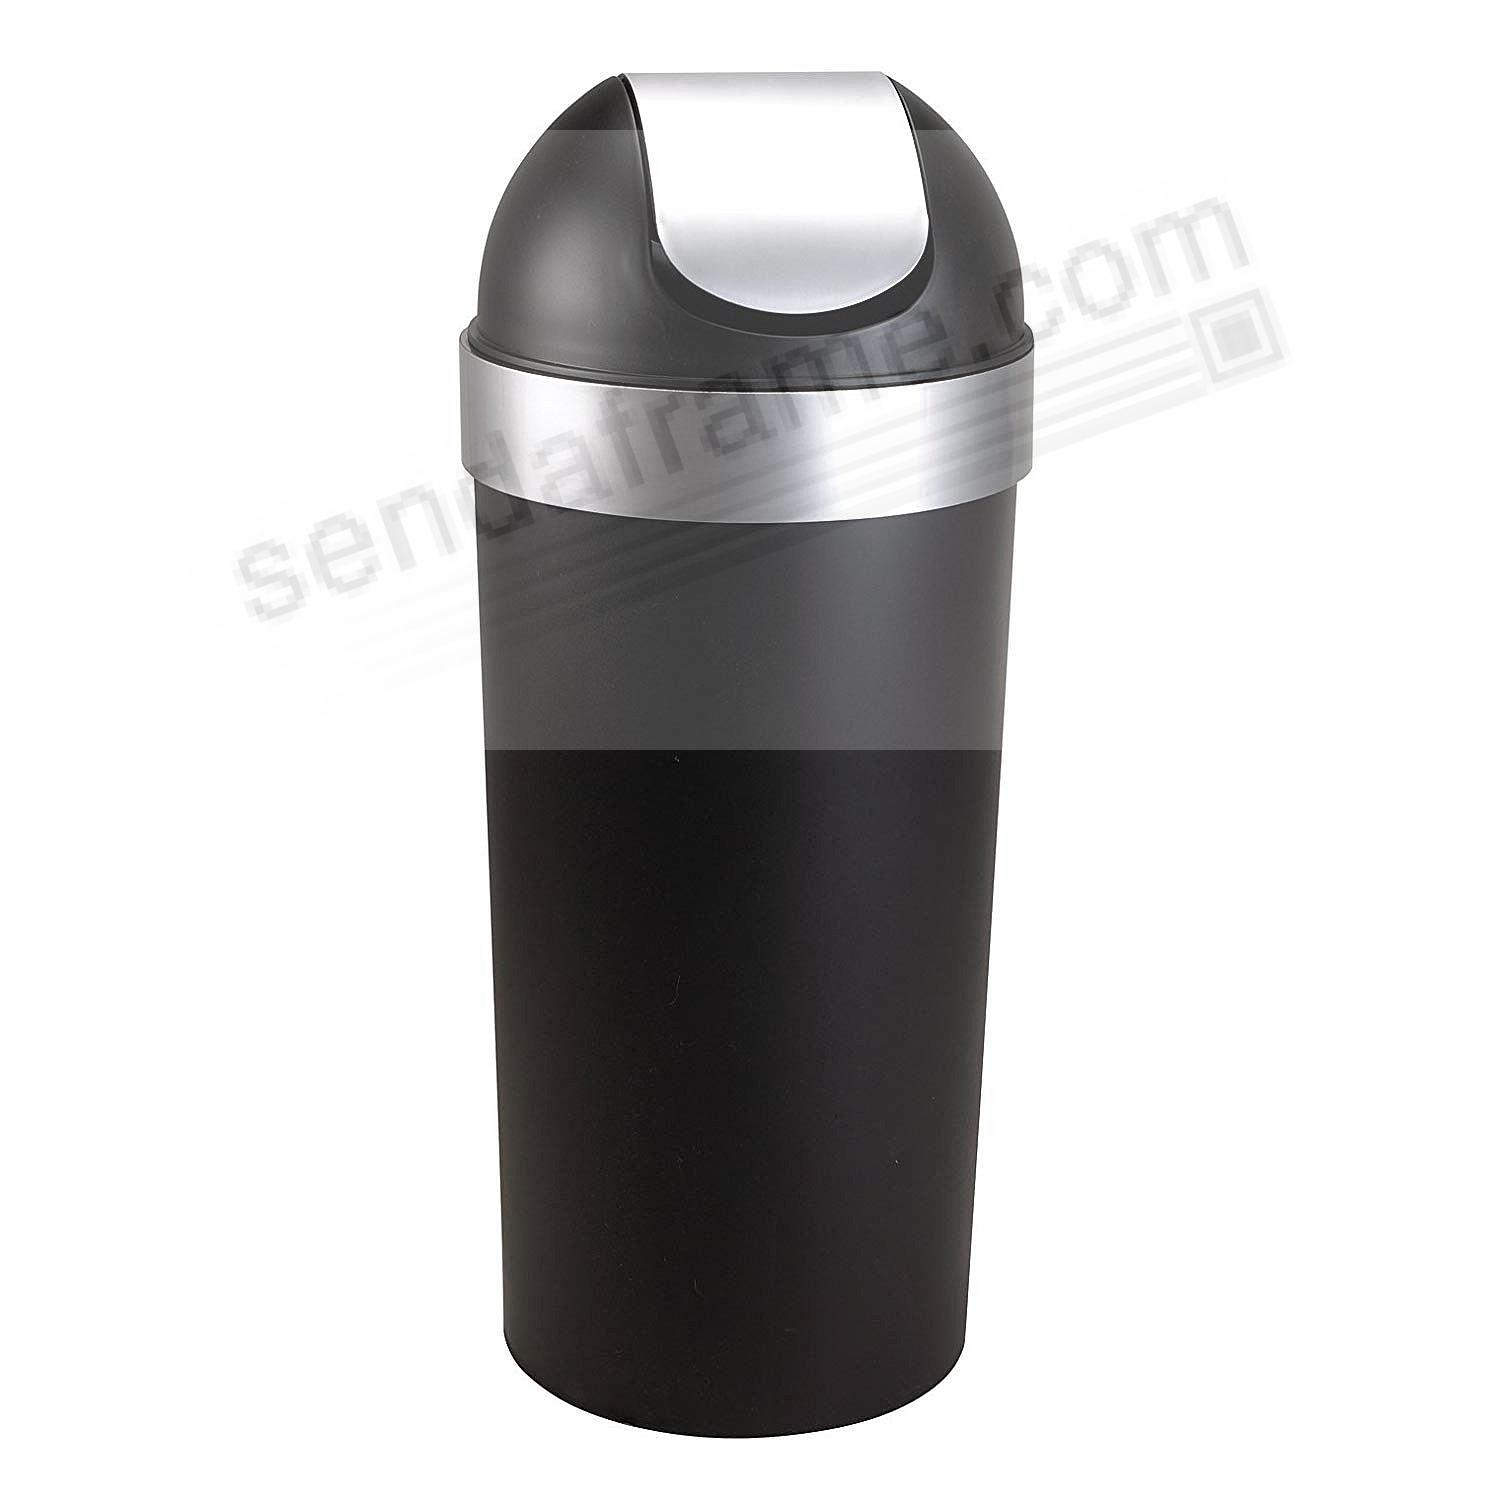 The Original VENTI TRASH CAN MATTE BLACK/NICKEL - by Umbra+®